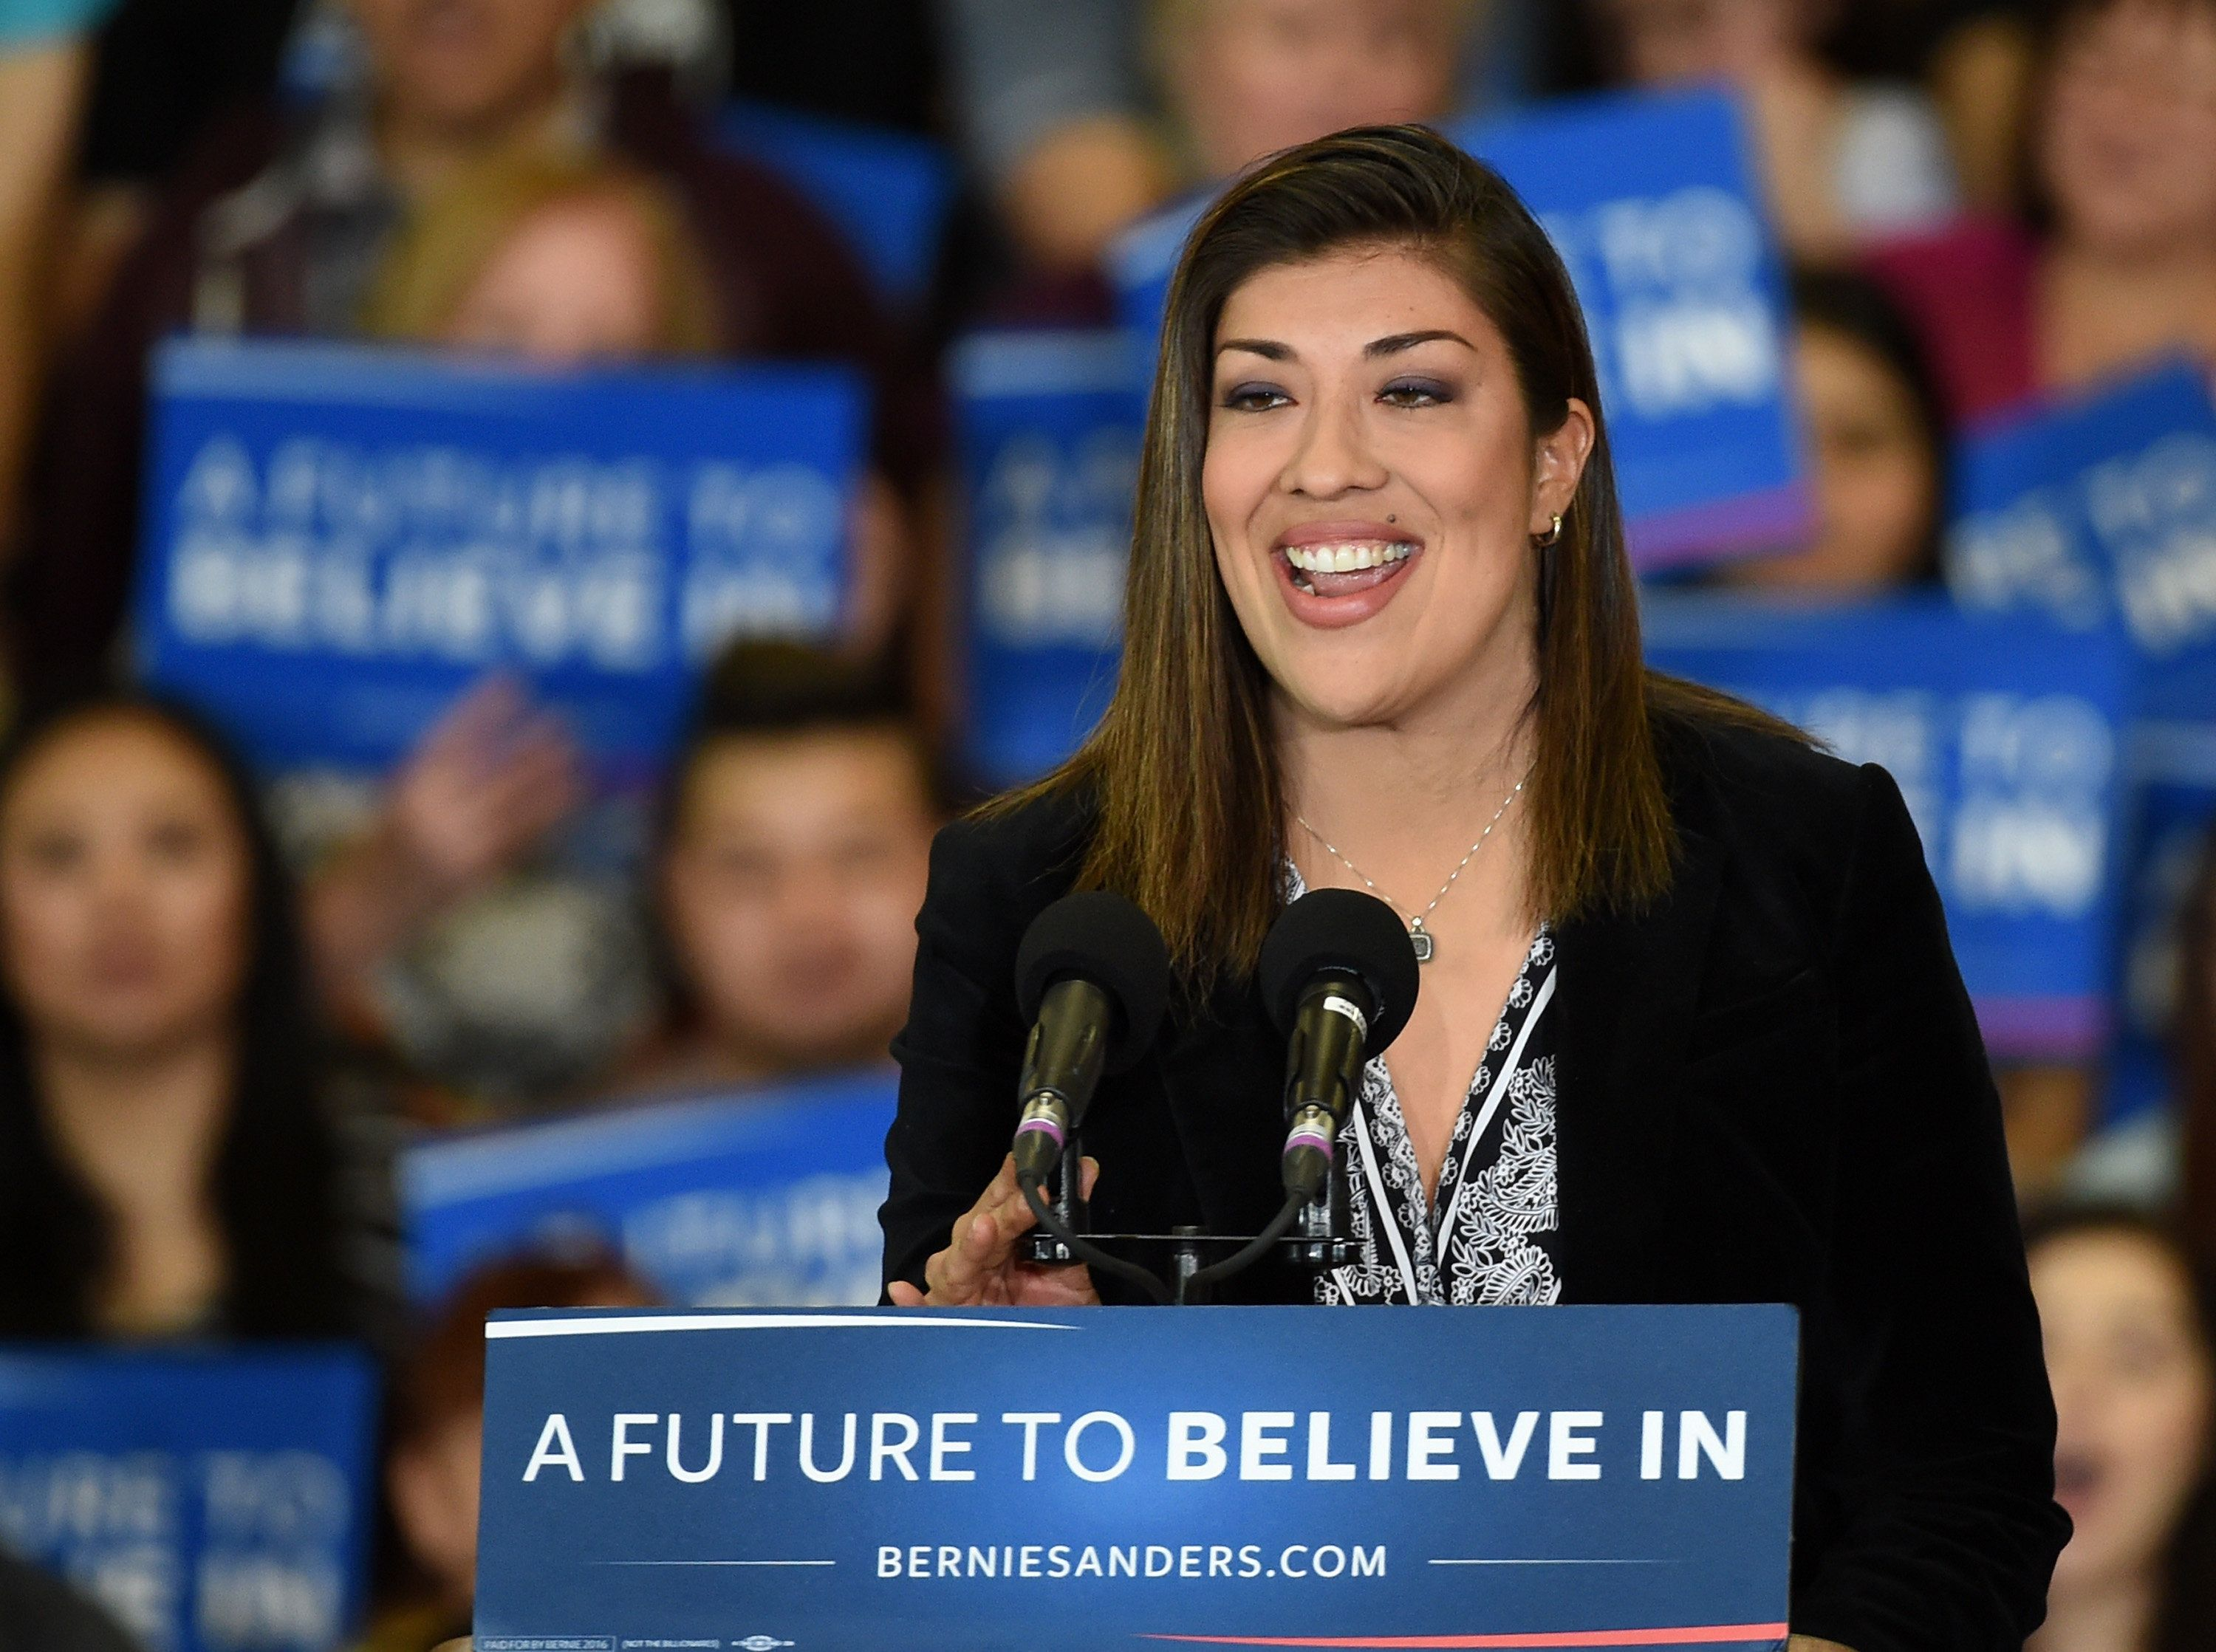 Former Nevada Assemblywoman Lucy Flores speaks at rally in Las Vegas for Sen. Bernie Sanders (I-Vt.) in February 2016. Flores